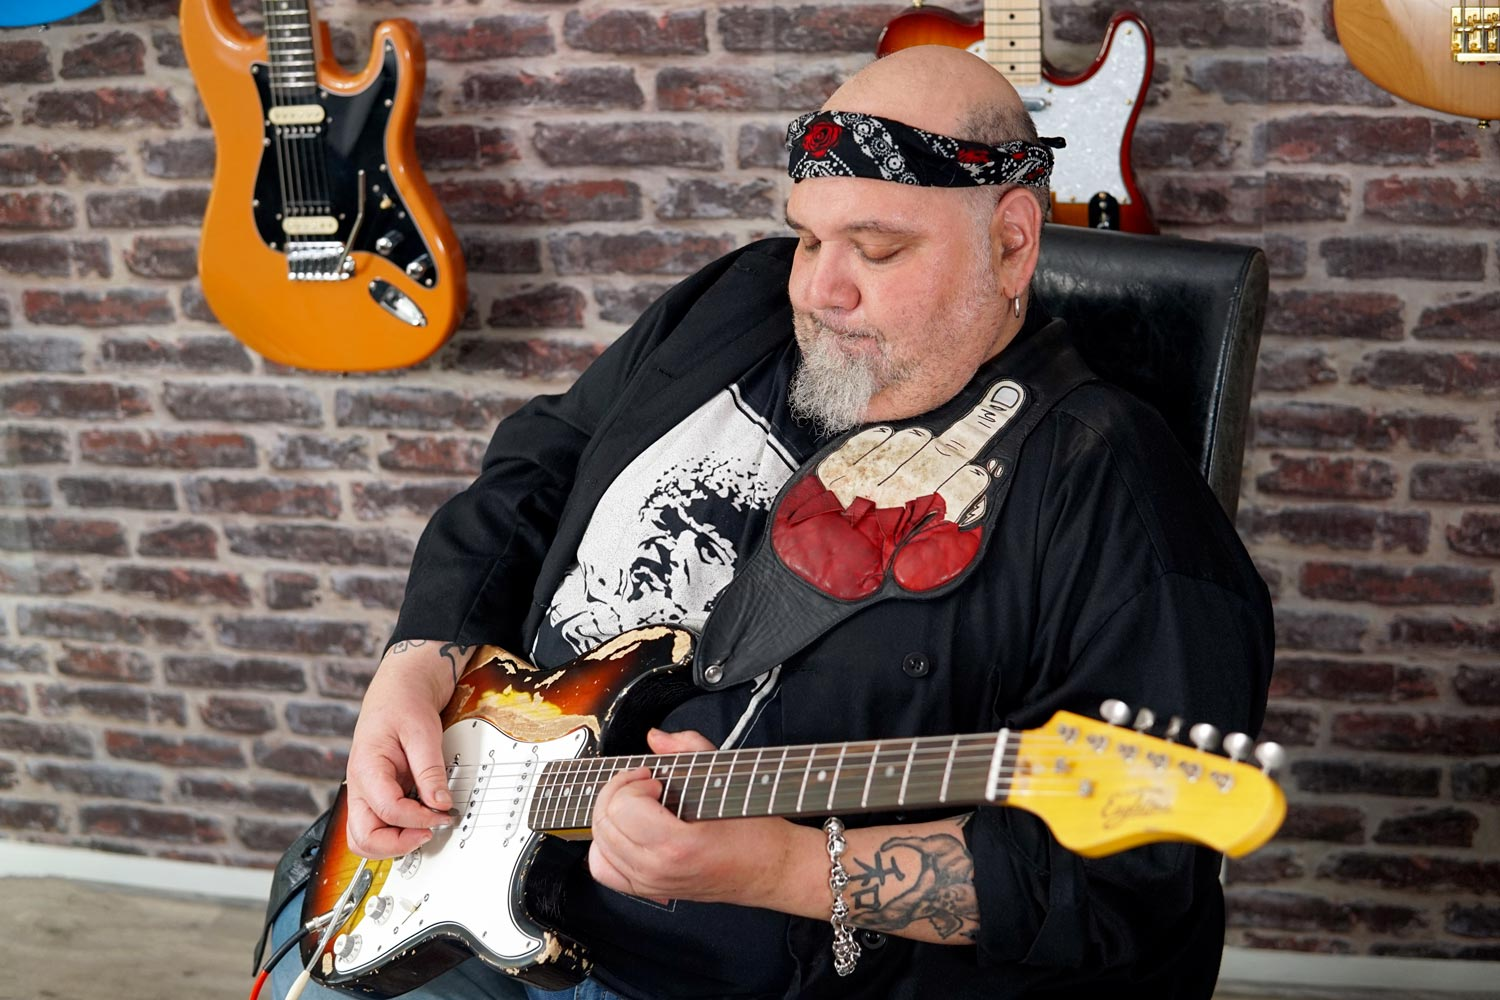 popa chubby woodbrass deluxe interview